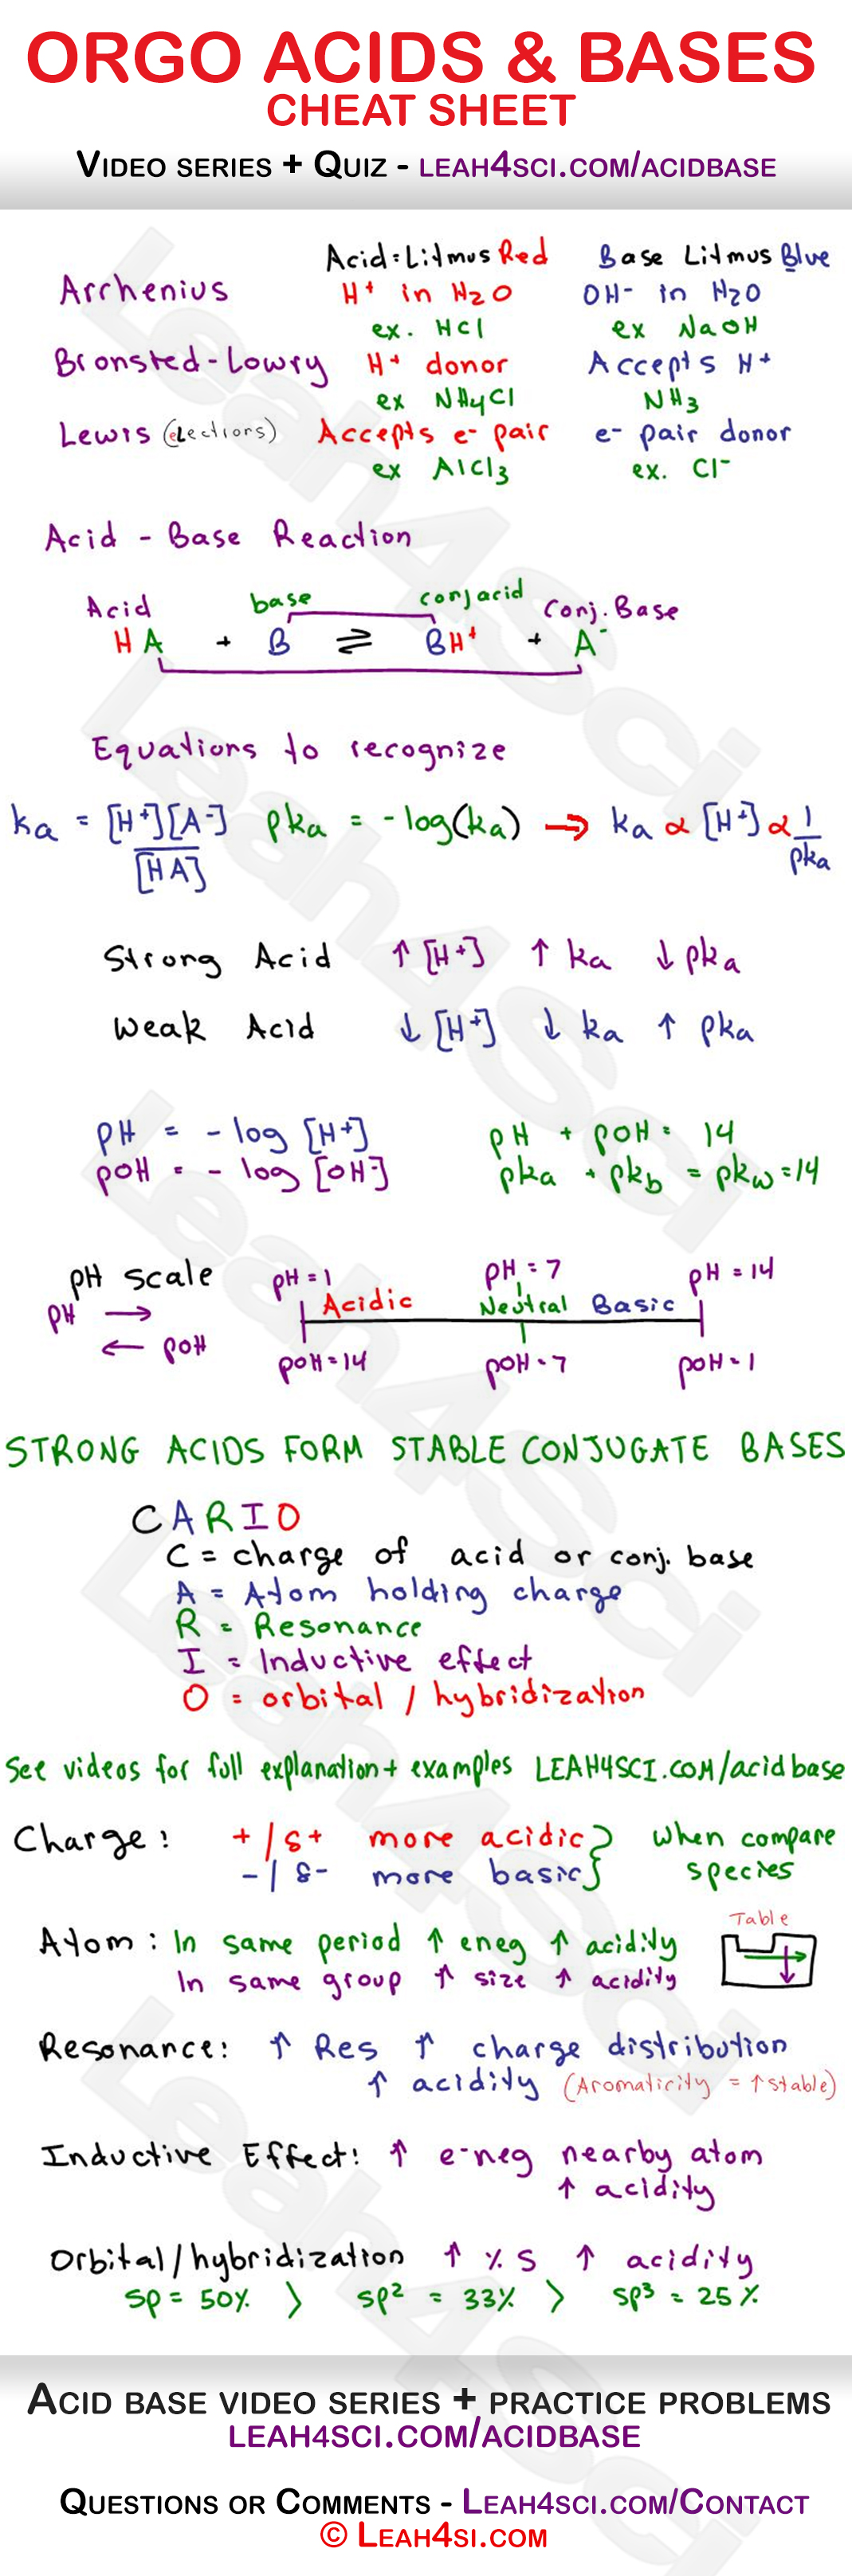 Acids and Bases in Organic Chemistry Cheat Sheet Study Guide – Acid Base Reactions Worksheet